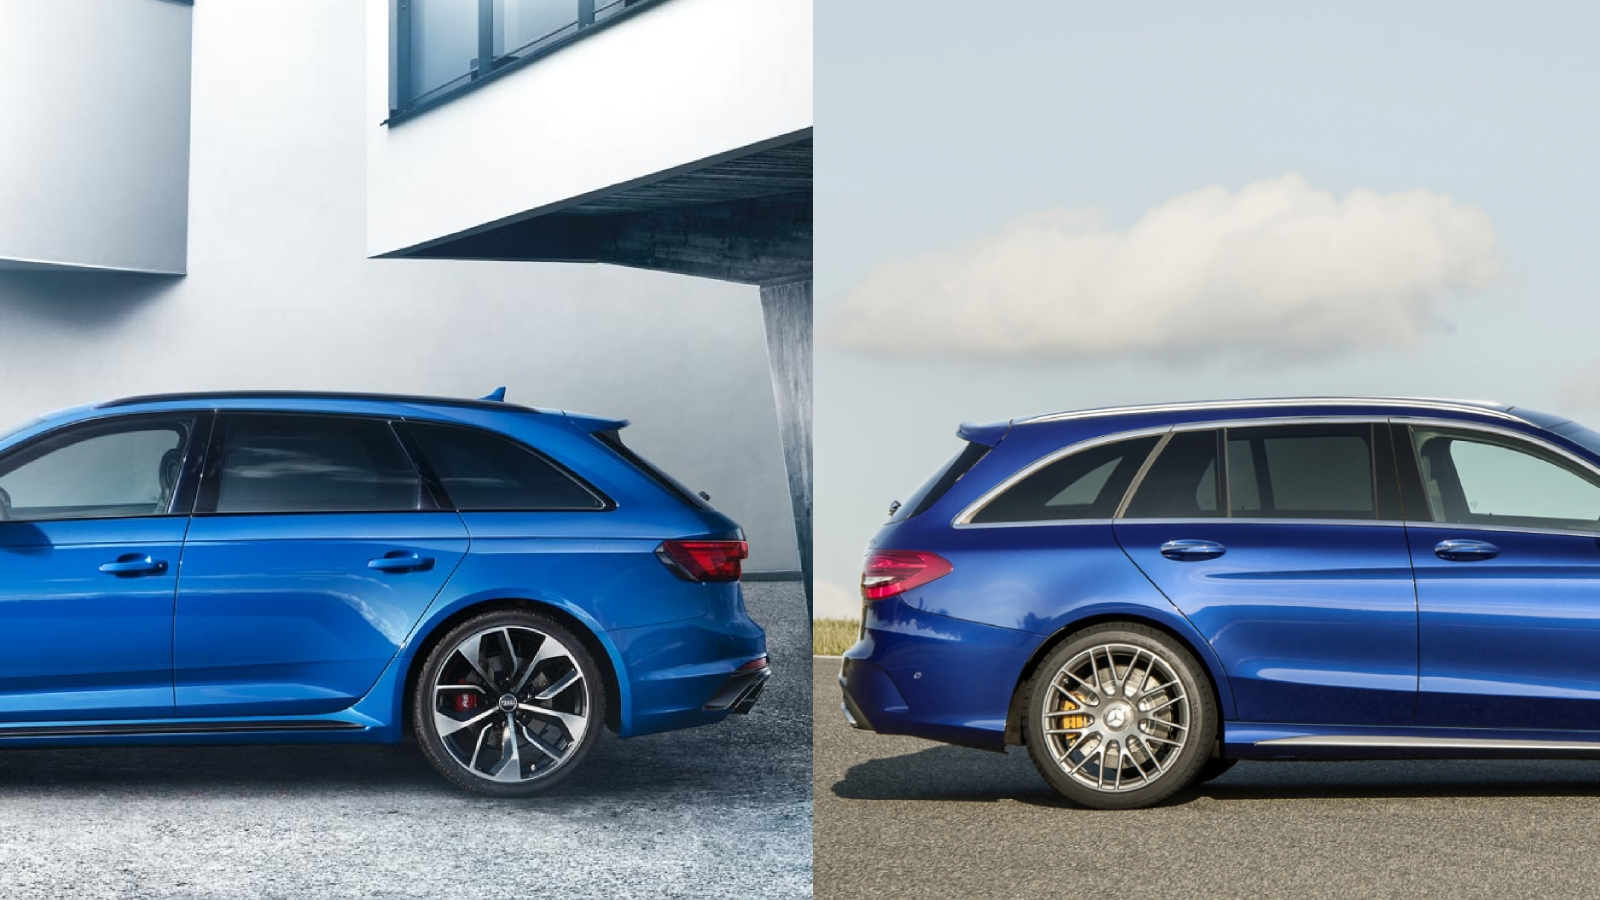 Audi RS4 Avant - Mercedes-AMG C 63 S Estate